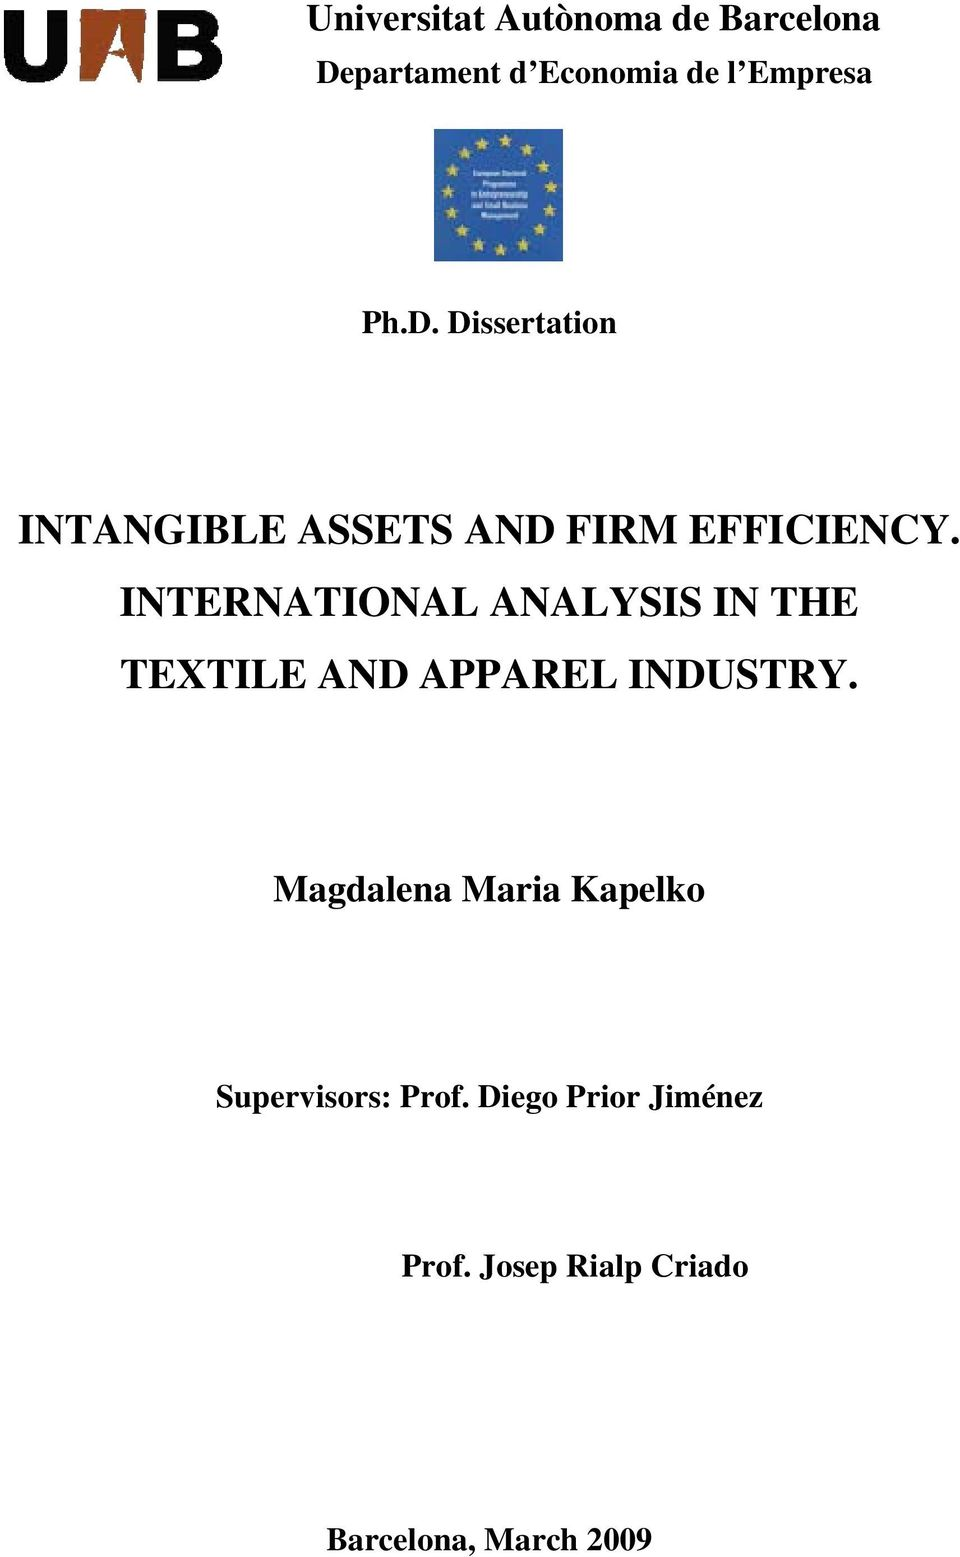 Dissertation INTANGIBLE ASSETS AND FIRM EFFICIENCY.